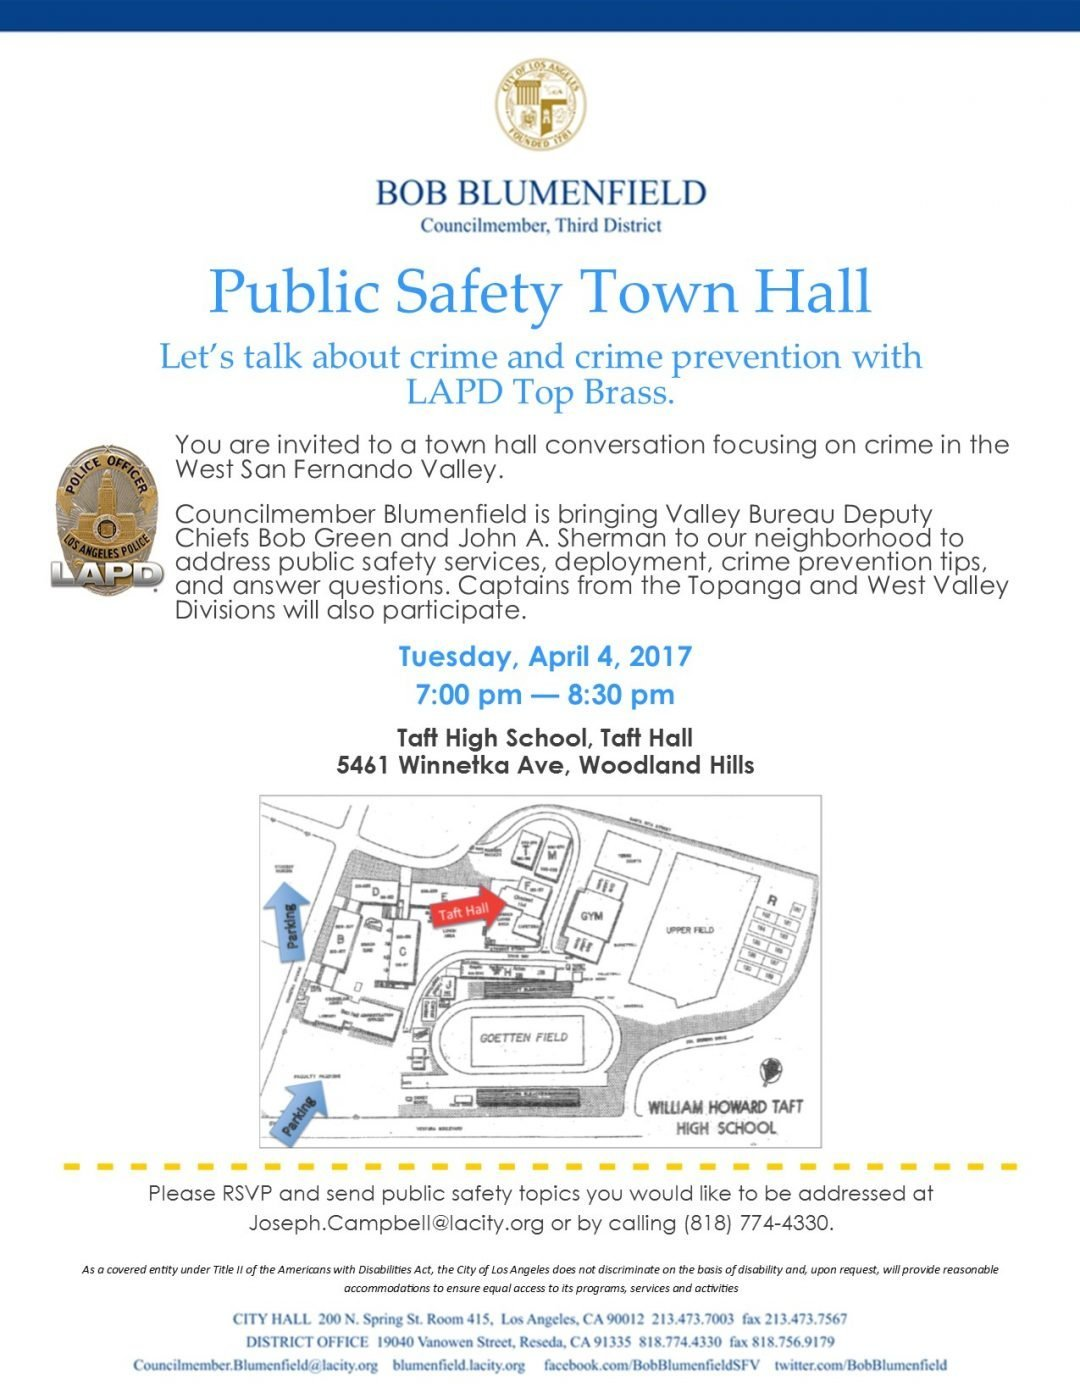 Public Safety Town Hall – Tuesday, April 4